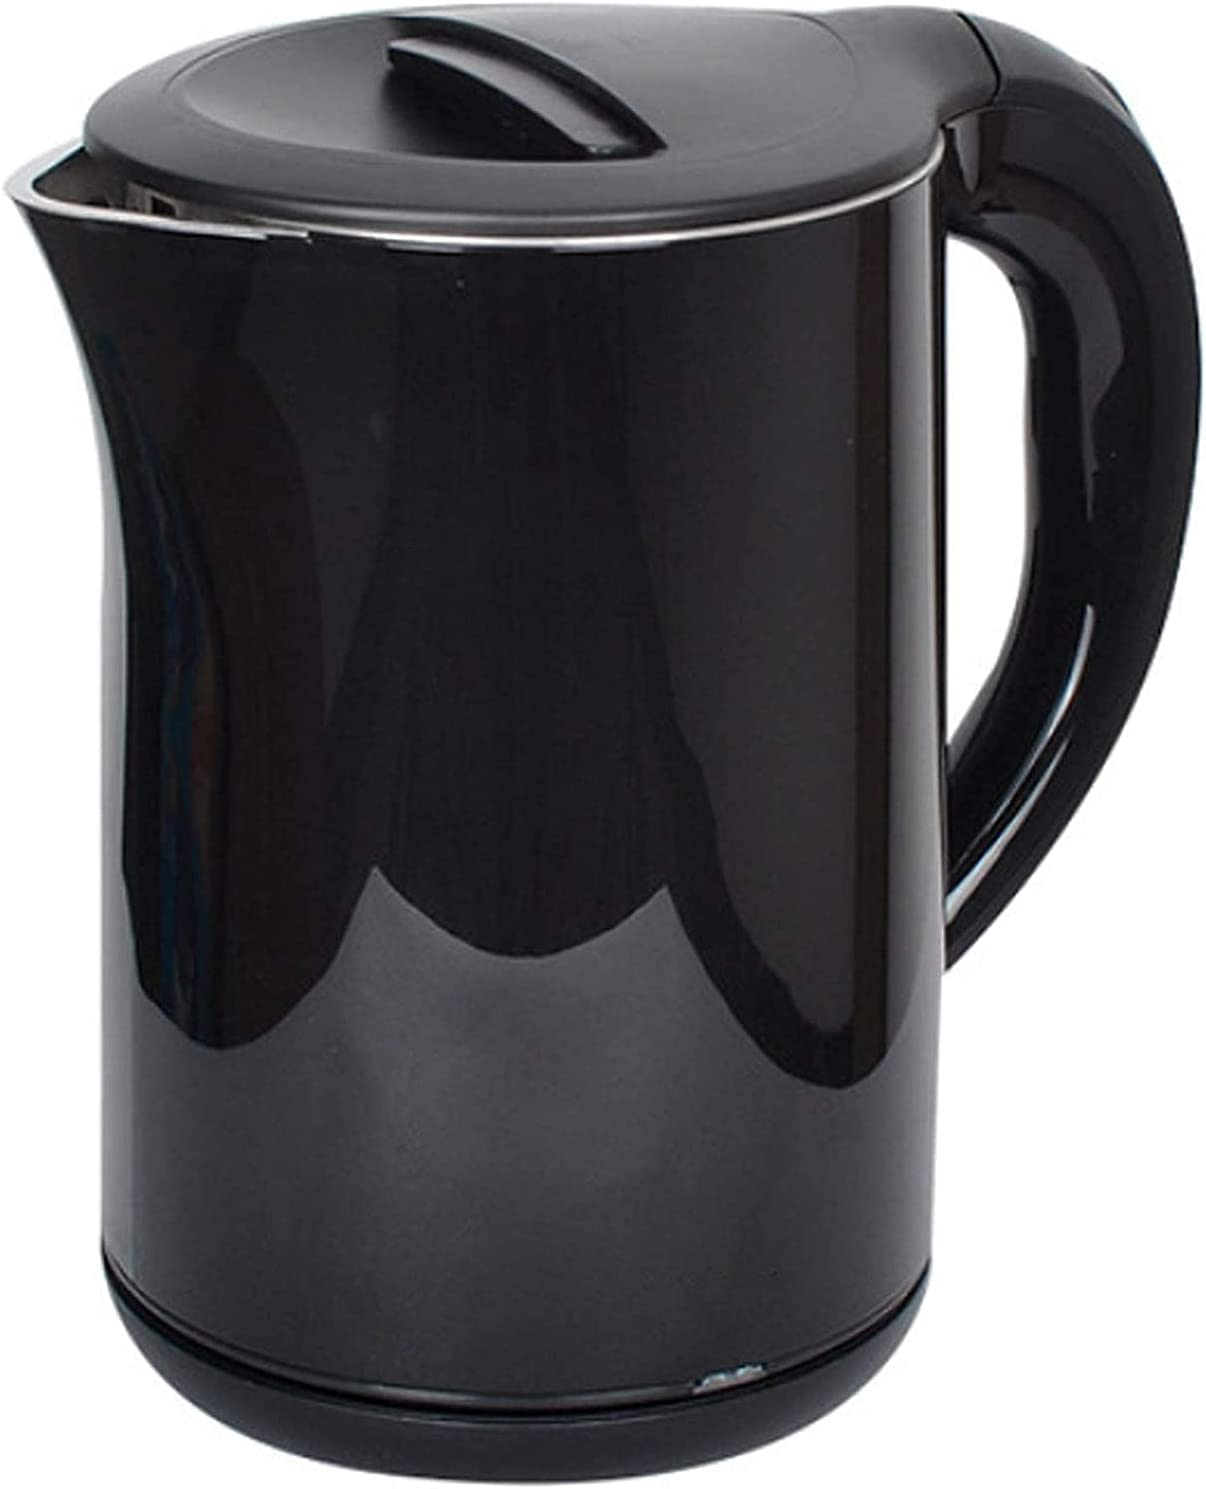 ZHZHUANG Stainless Steel Electric Kettle Dedicated Branded goods Hotel Electr Some reservation